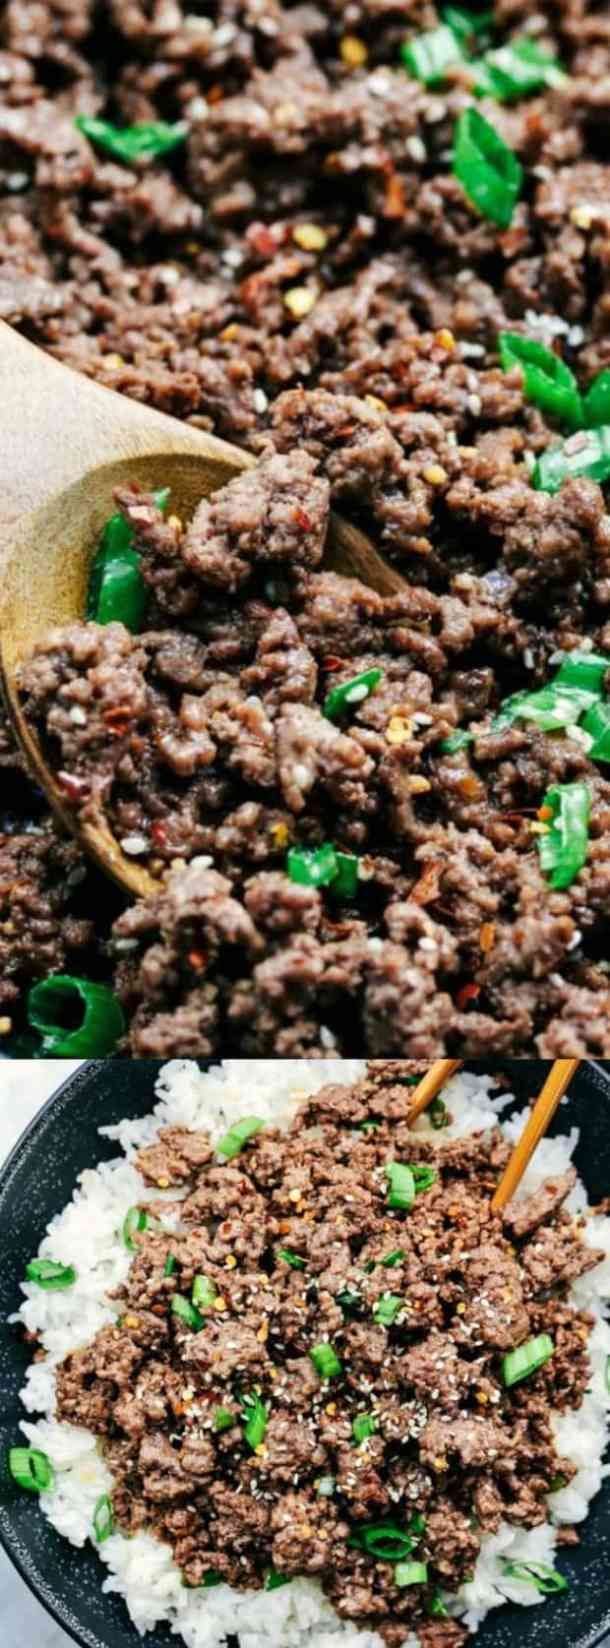 KOREAN GROUND BEEF AND RICE BOWLS